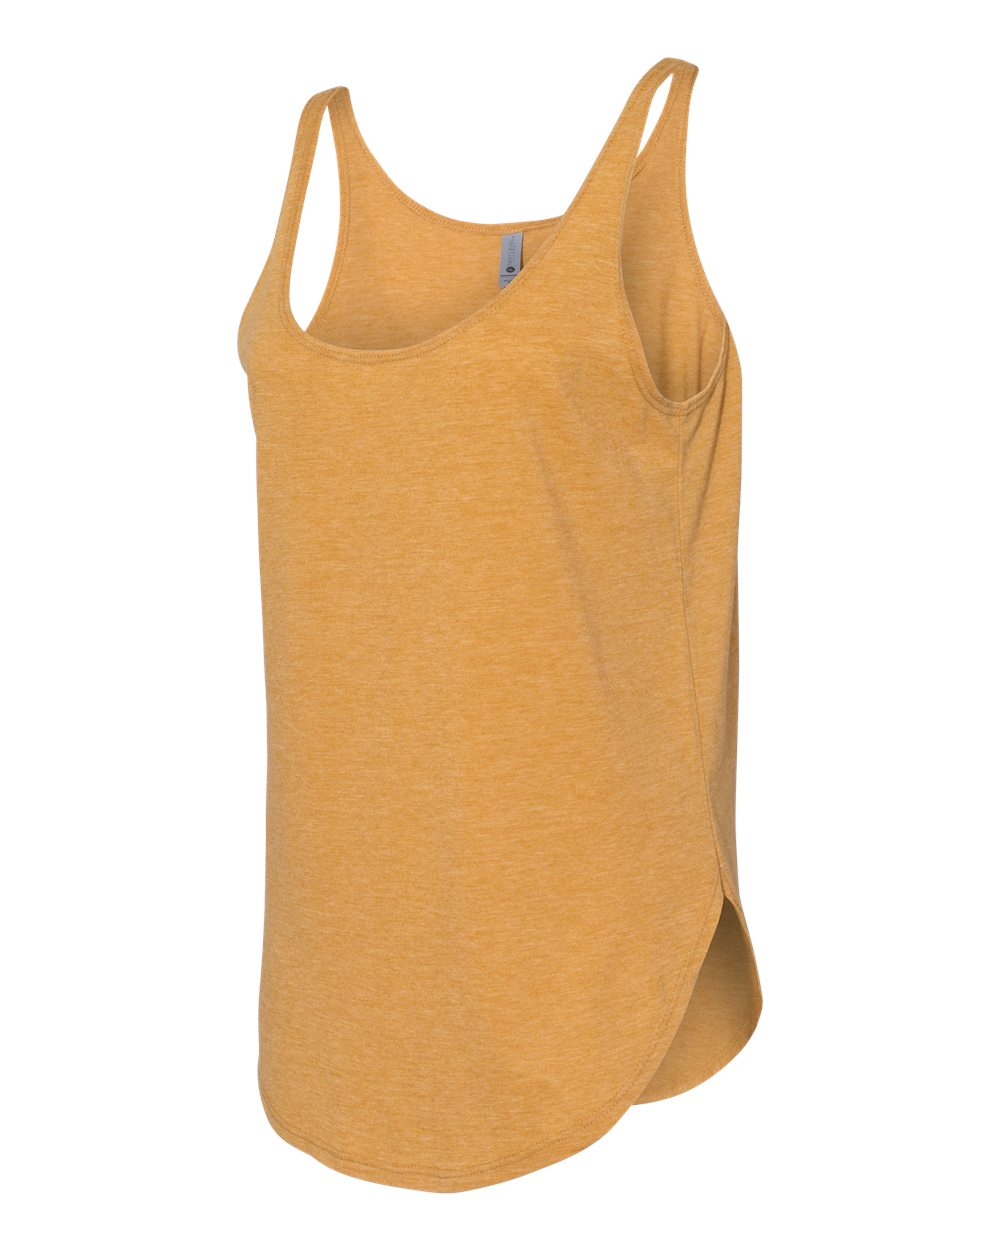 Next Level Apparel 5033 - Women's Festival Tank